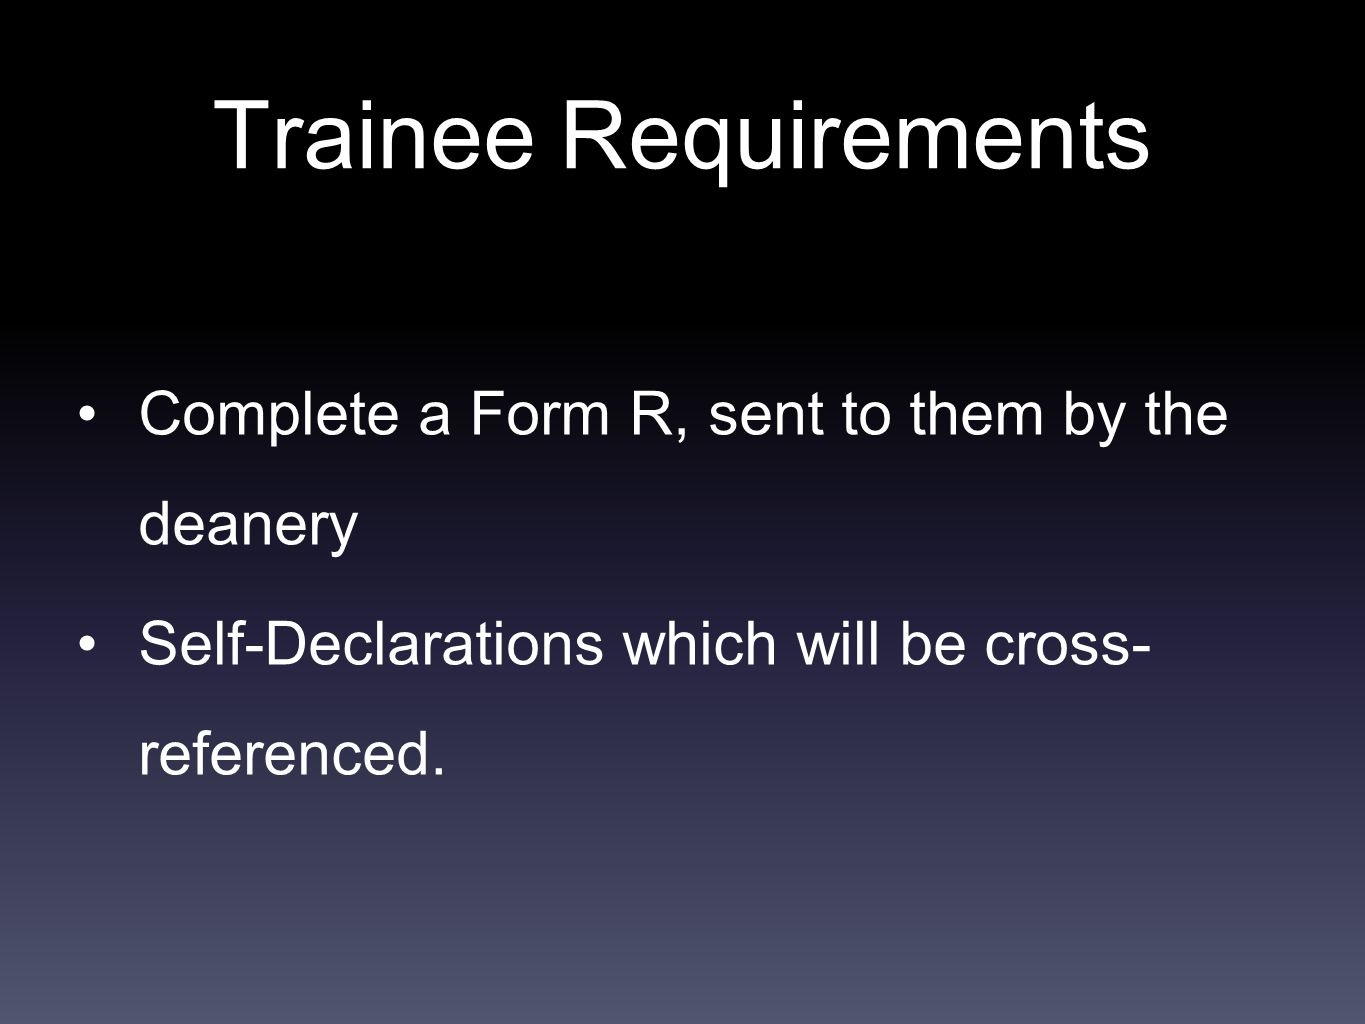 Trainee Requirements Complete a Form R, sent to them by the deanery Self-Declarations which will be cross- referenced.